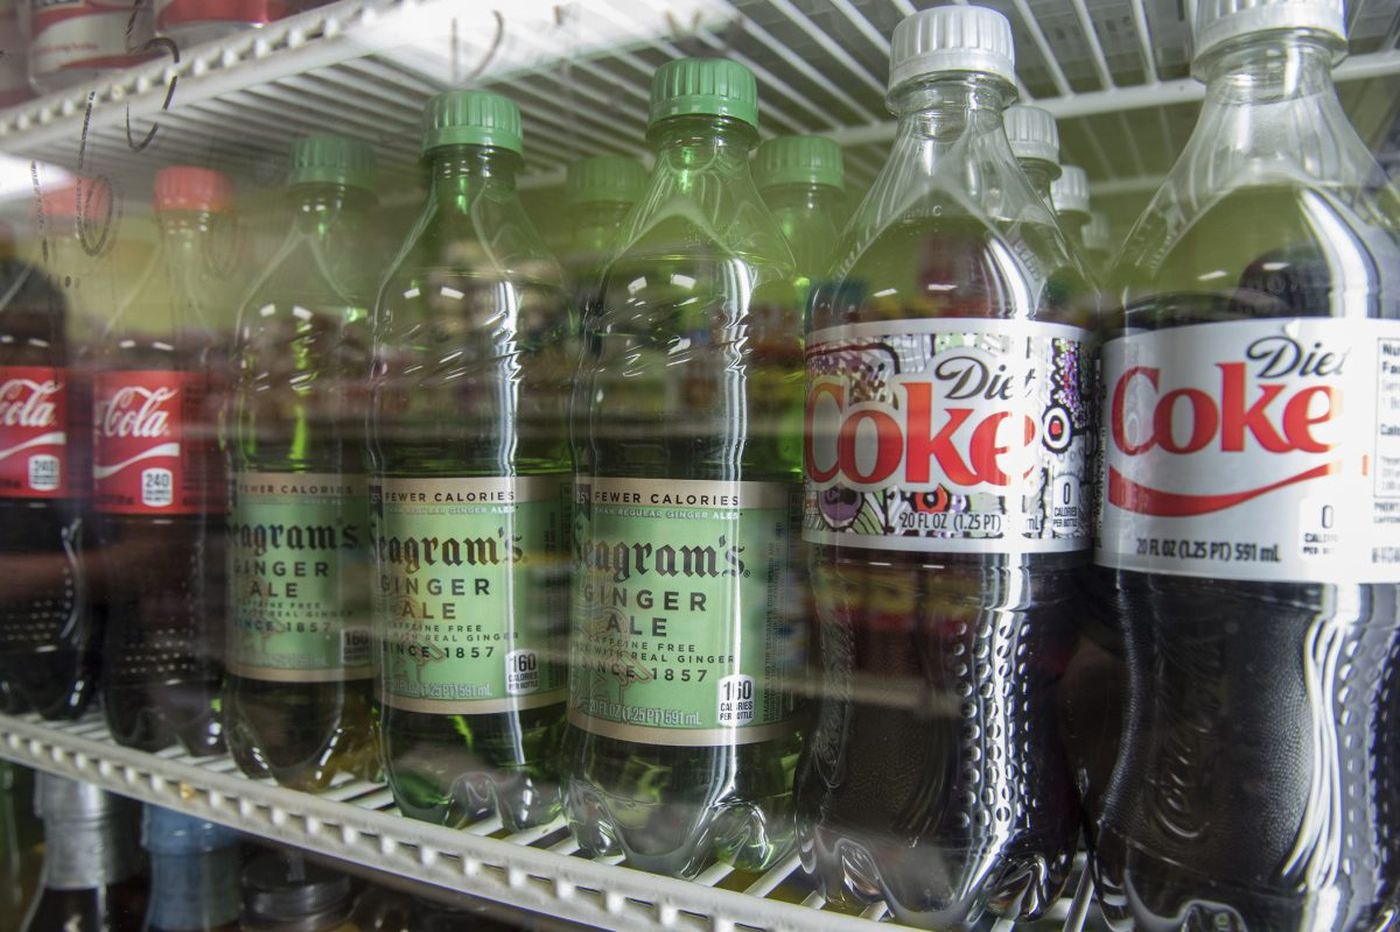 Pa. legislators trying to kill soda tax in Philly and elsewhere | Editorial